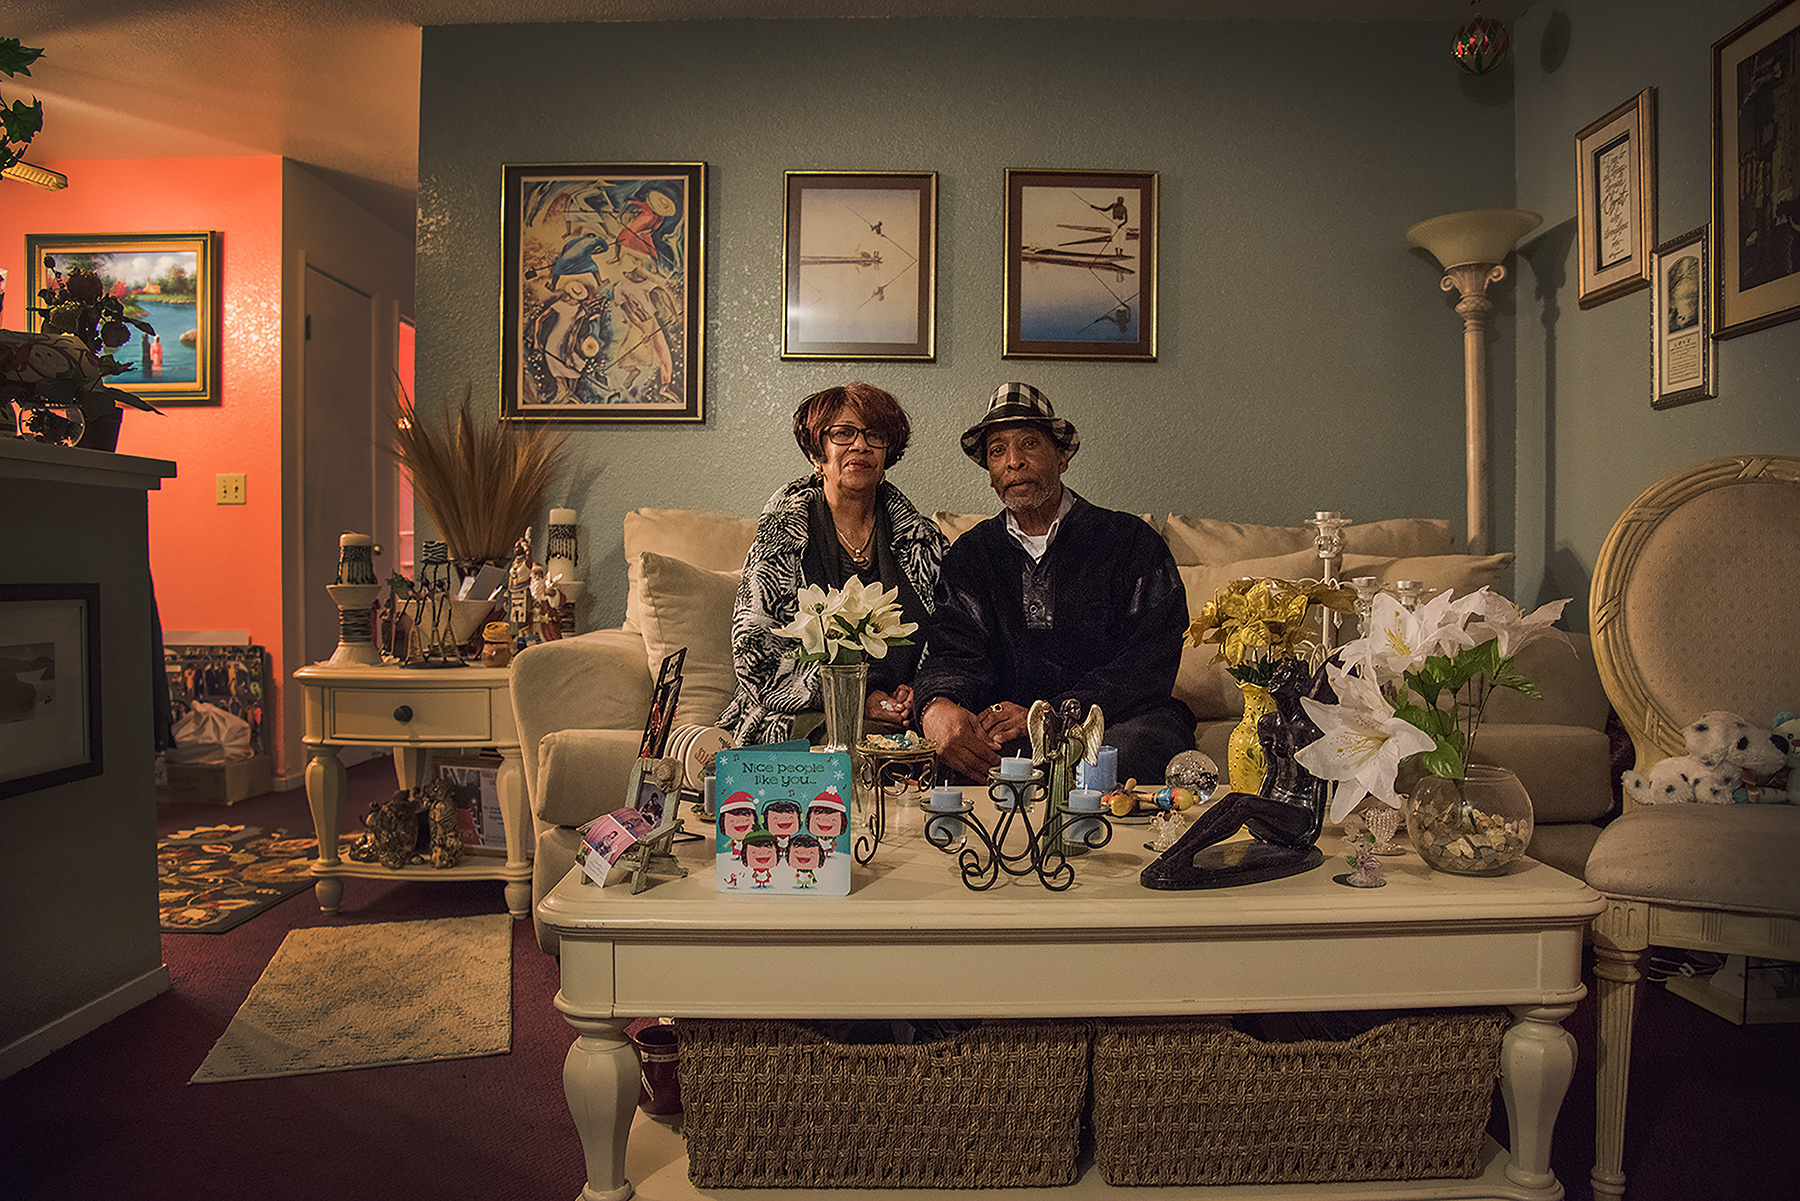 Eight months after he was released from his own Humphrey hearing, Mr. Kenneth Humphrey sits in his home with his longtime partner Judy. They live a quiet life - walks on the lake, family gatherings.